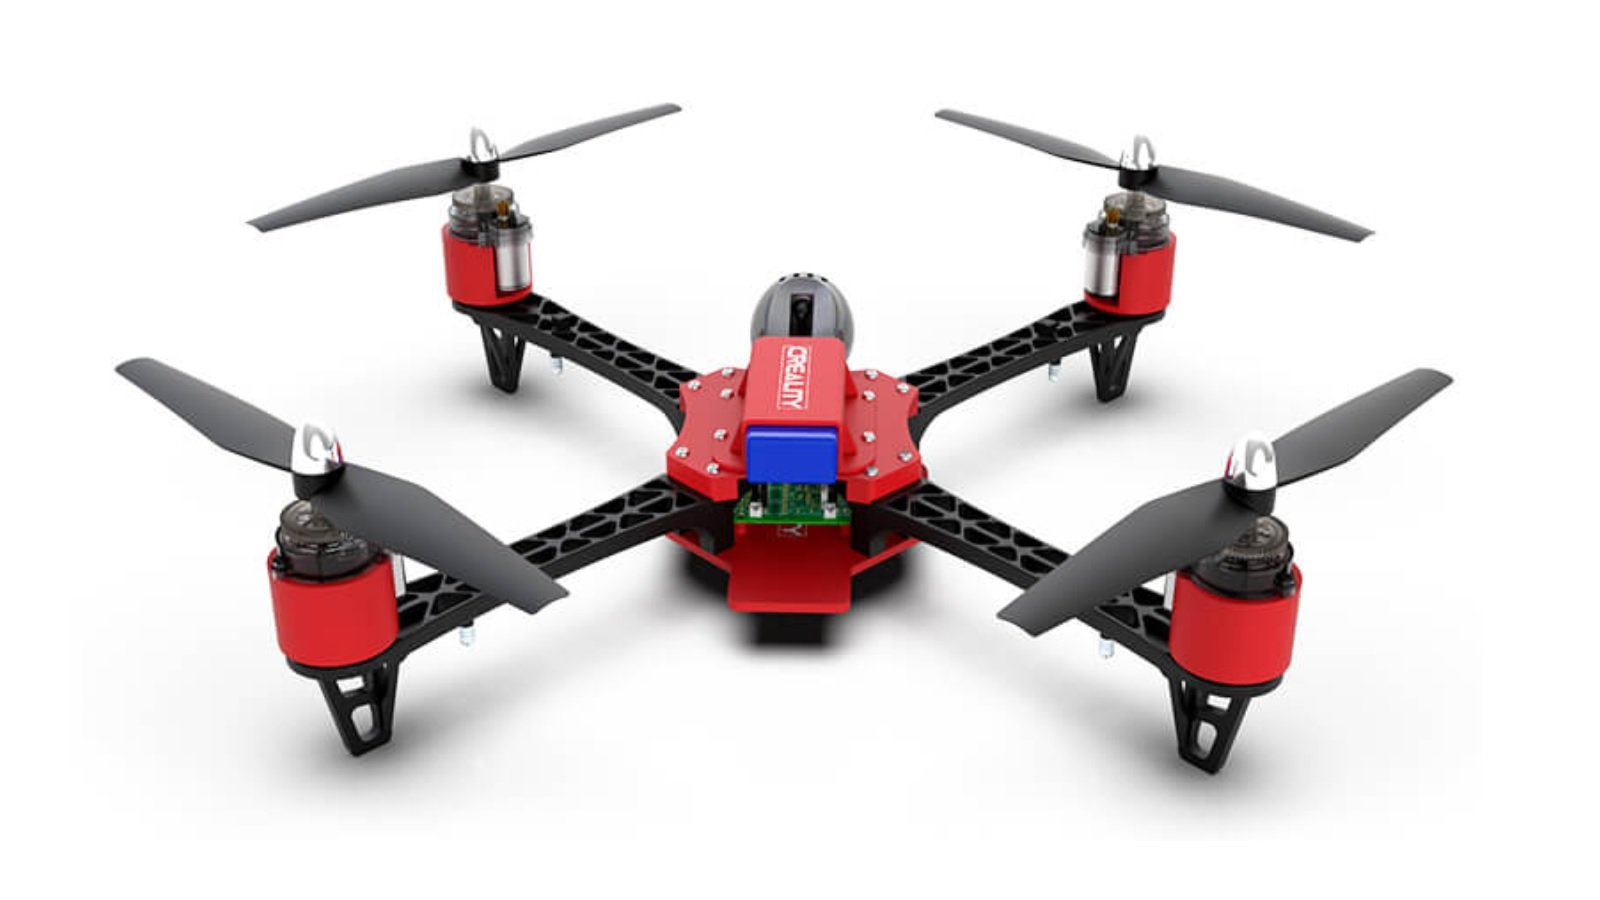 Creality Searcher 01 3D Printed Drone Assembly Kit: Review the Specs | All3DP